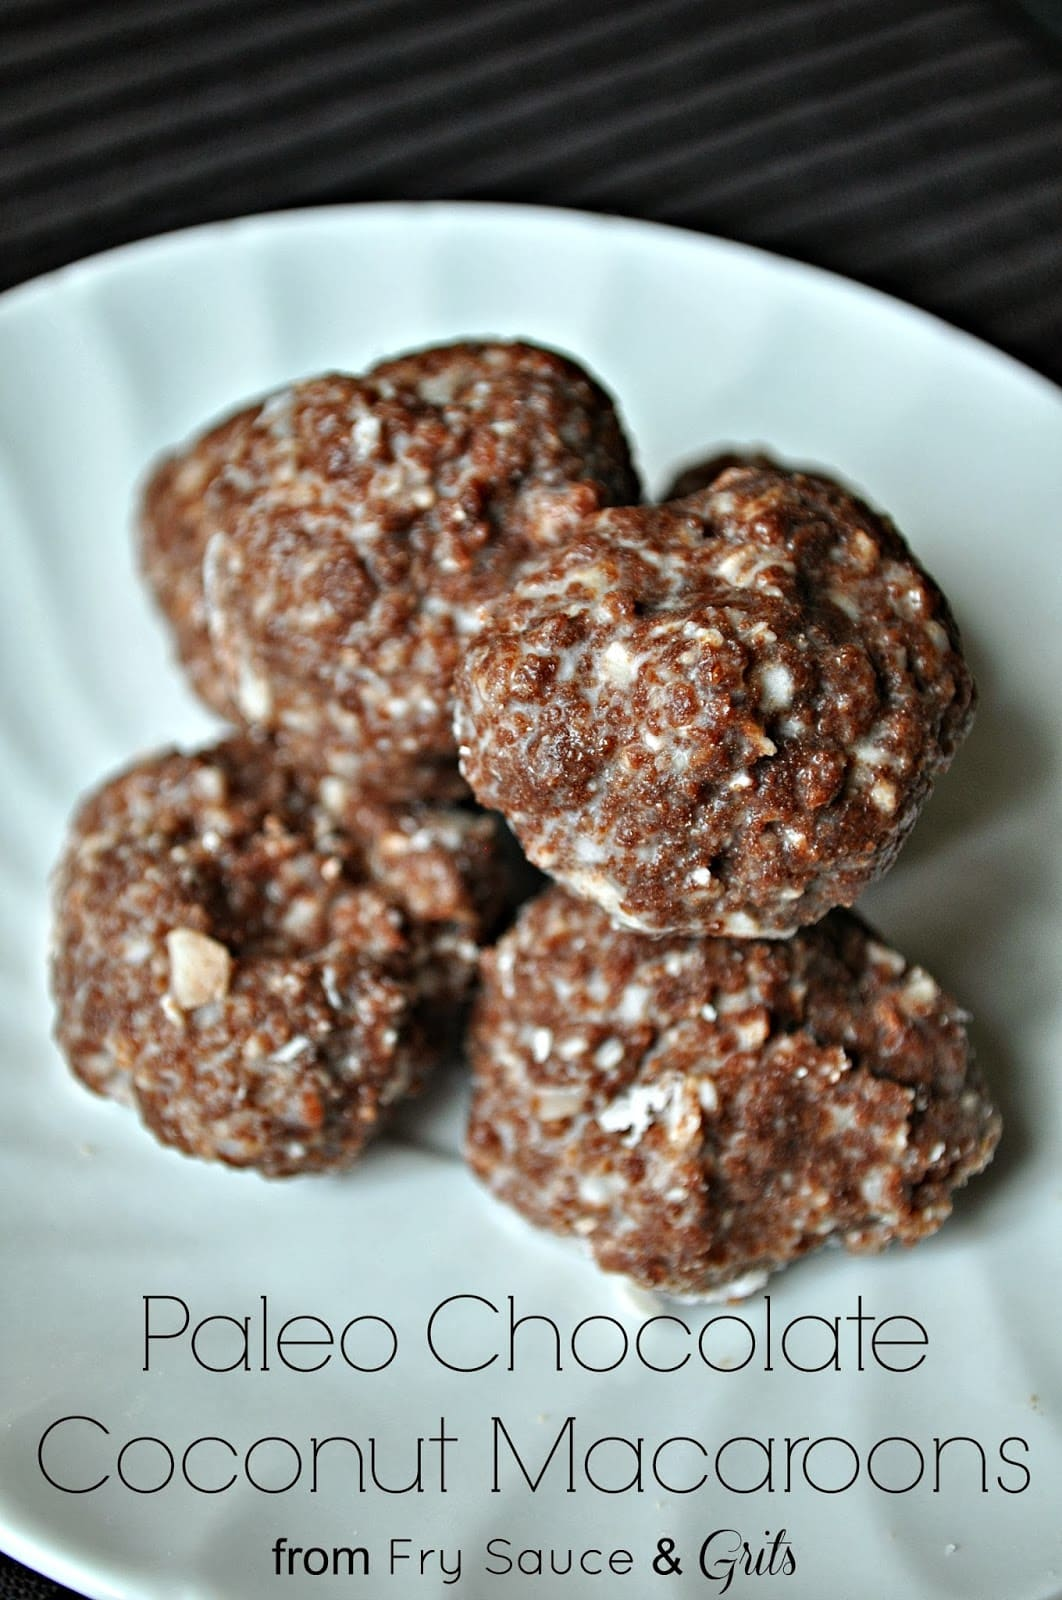 Paleo Chocolate Coconut Macaroons from Fry Sauce and Grits